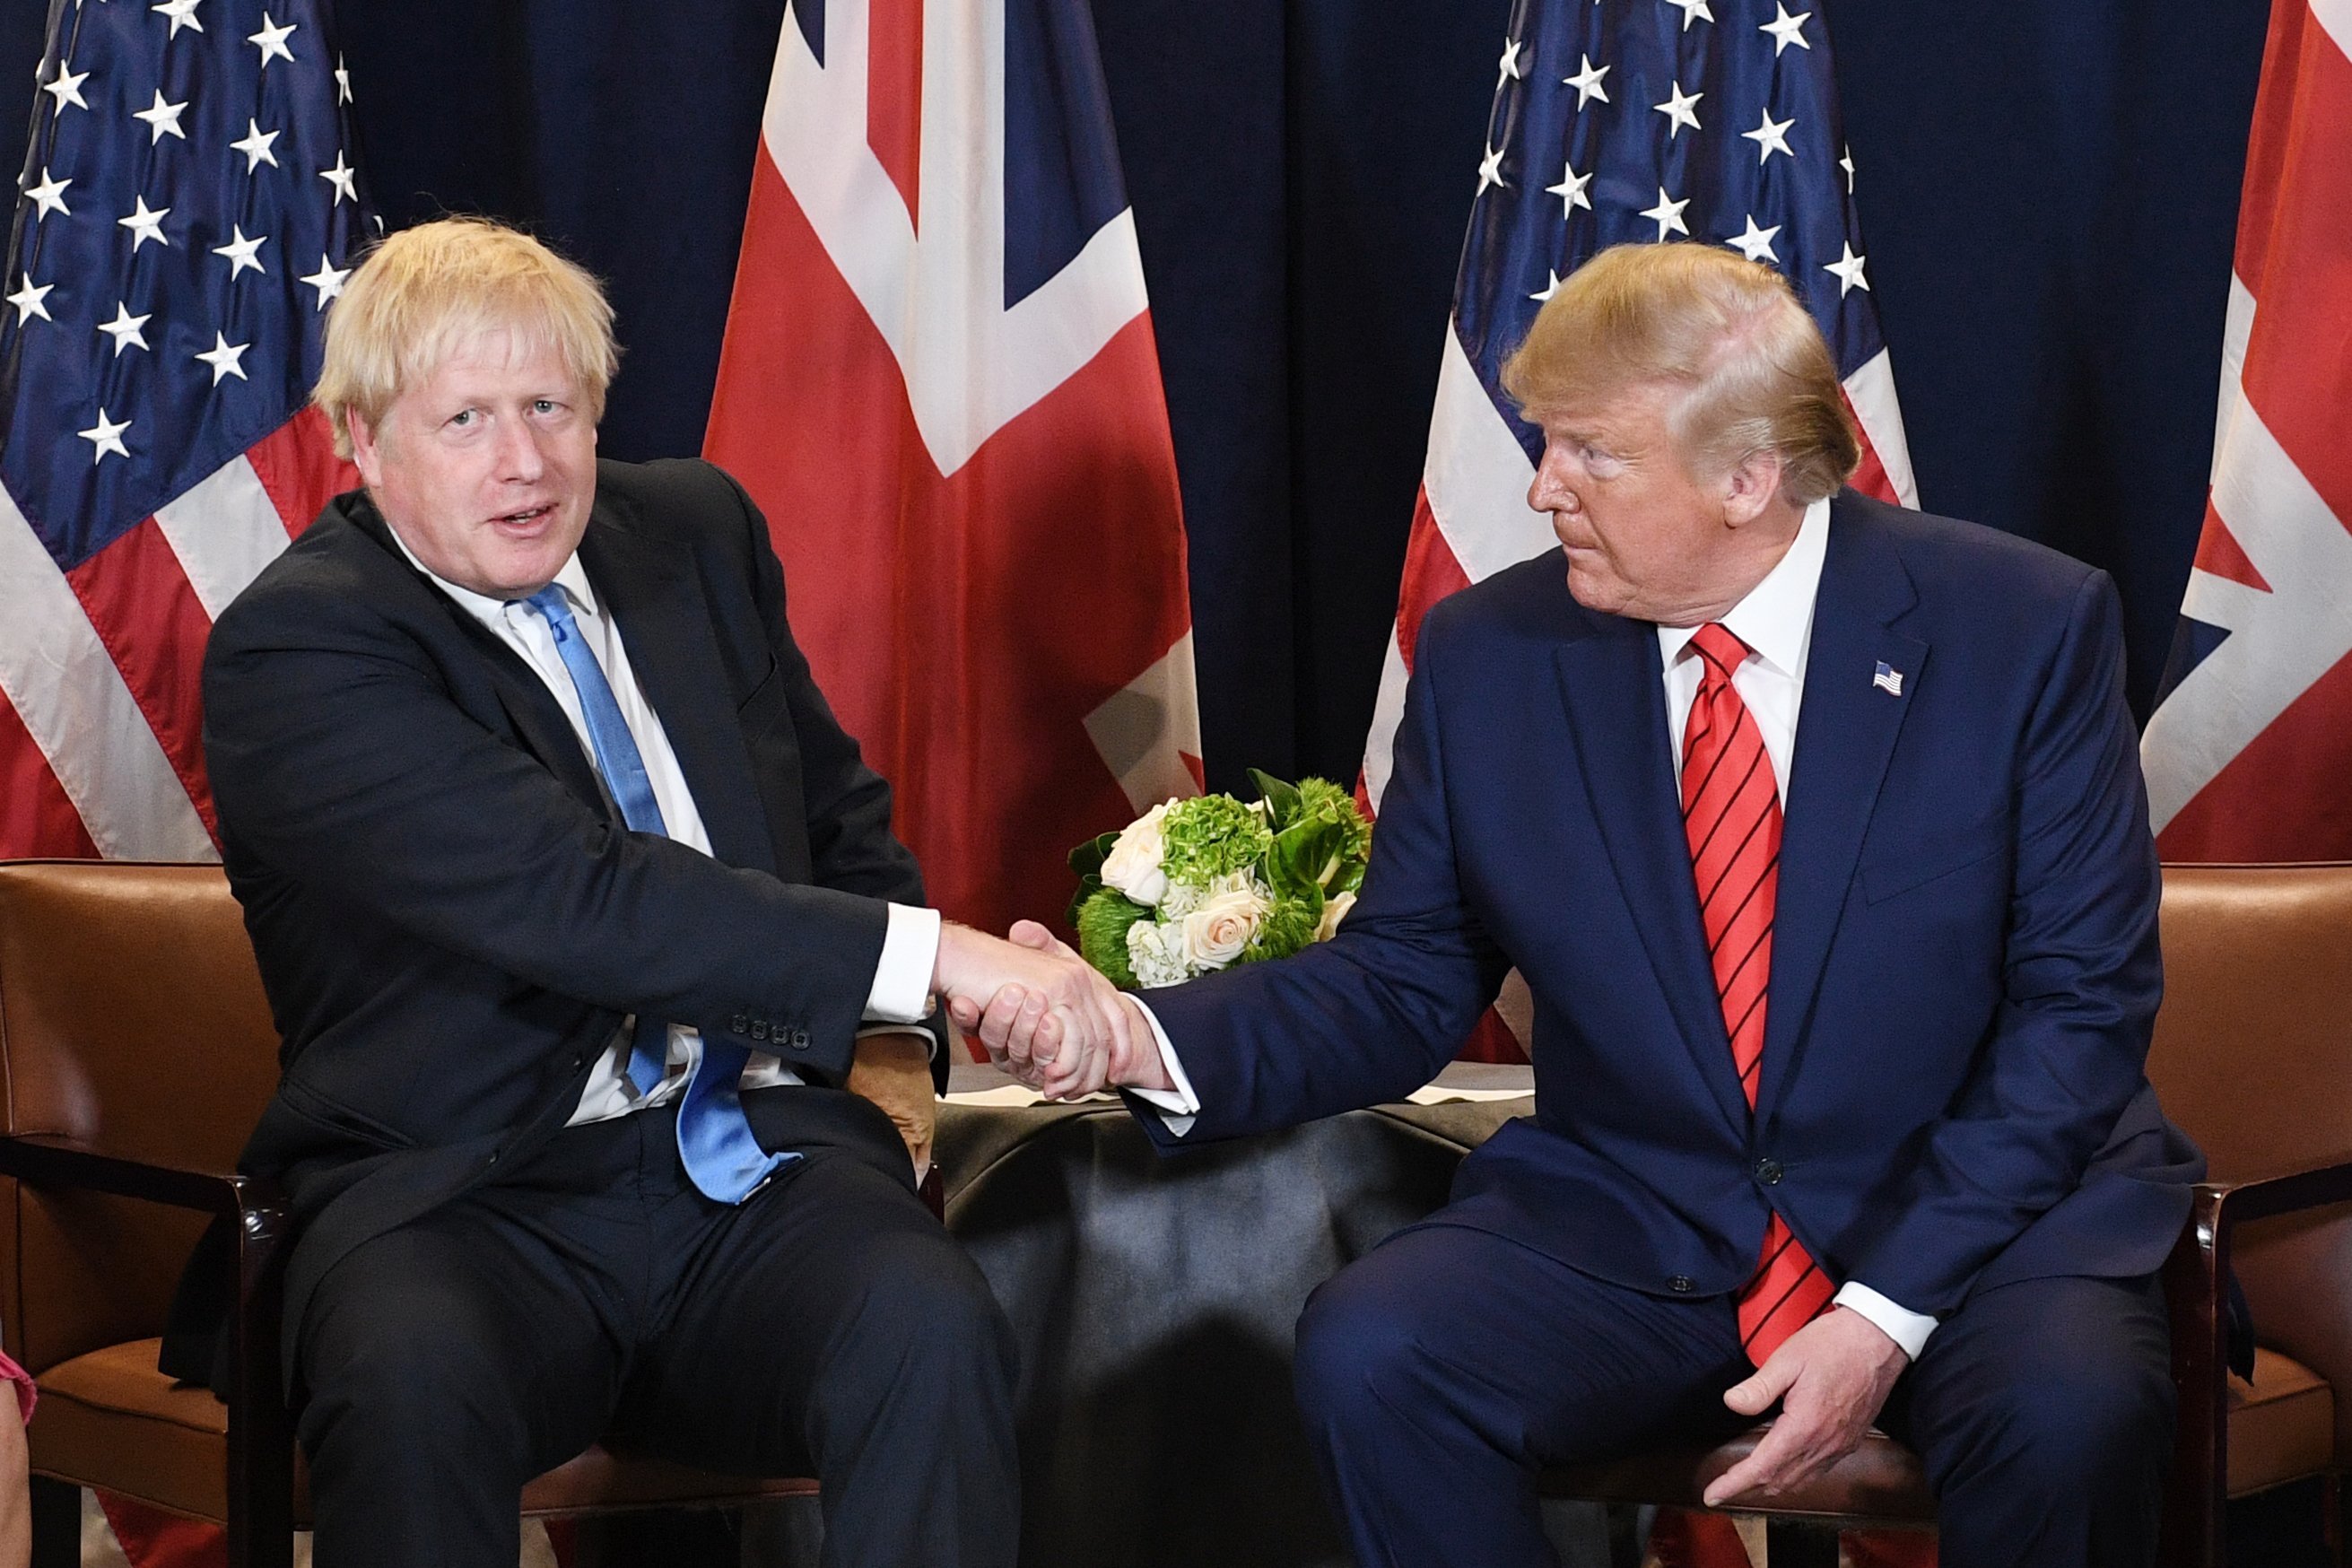 Trump Holds Private Meeting with UK's Boris Johnson